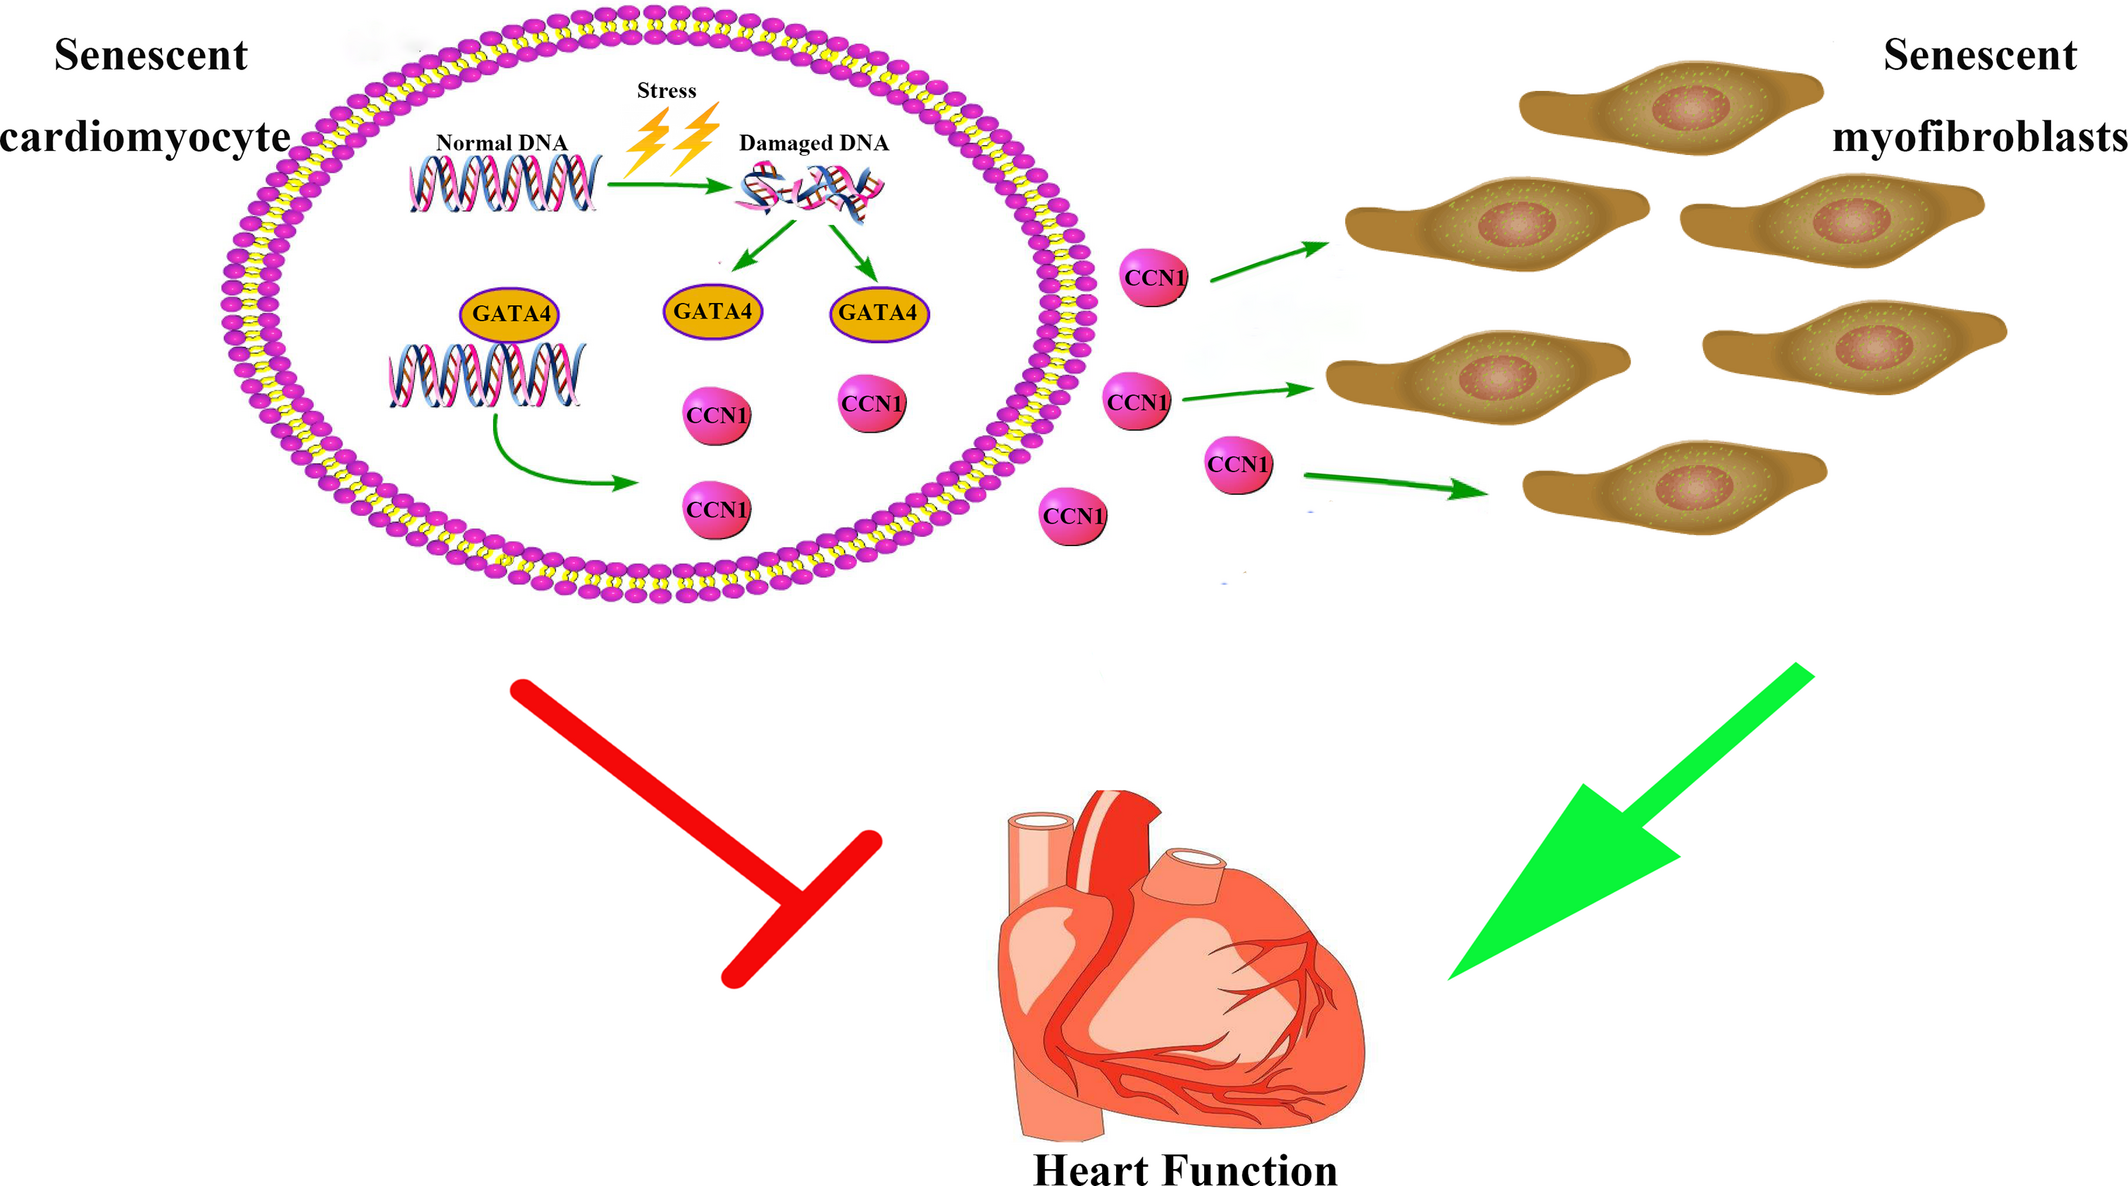 Postinfarction Hearts Are Protected By Premature Senescent